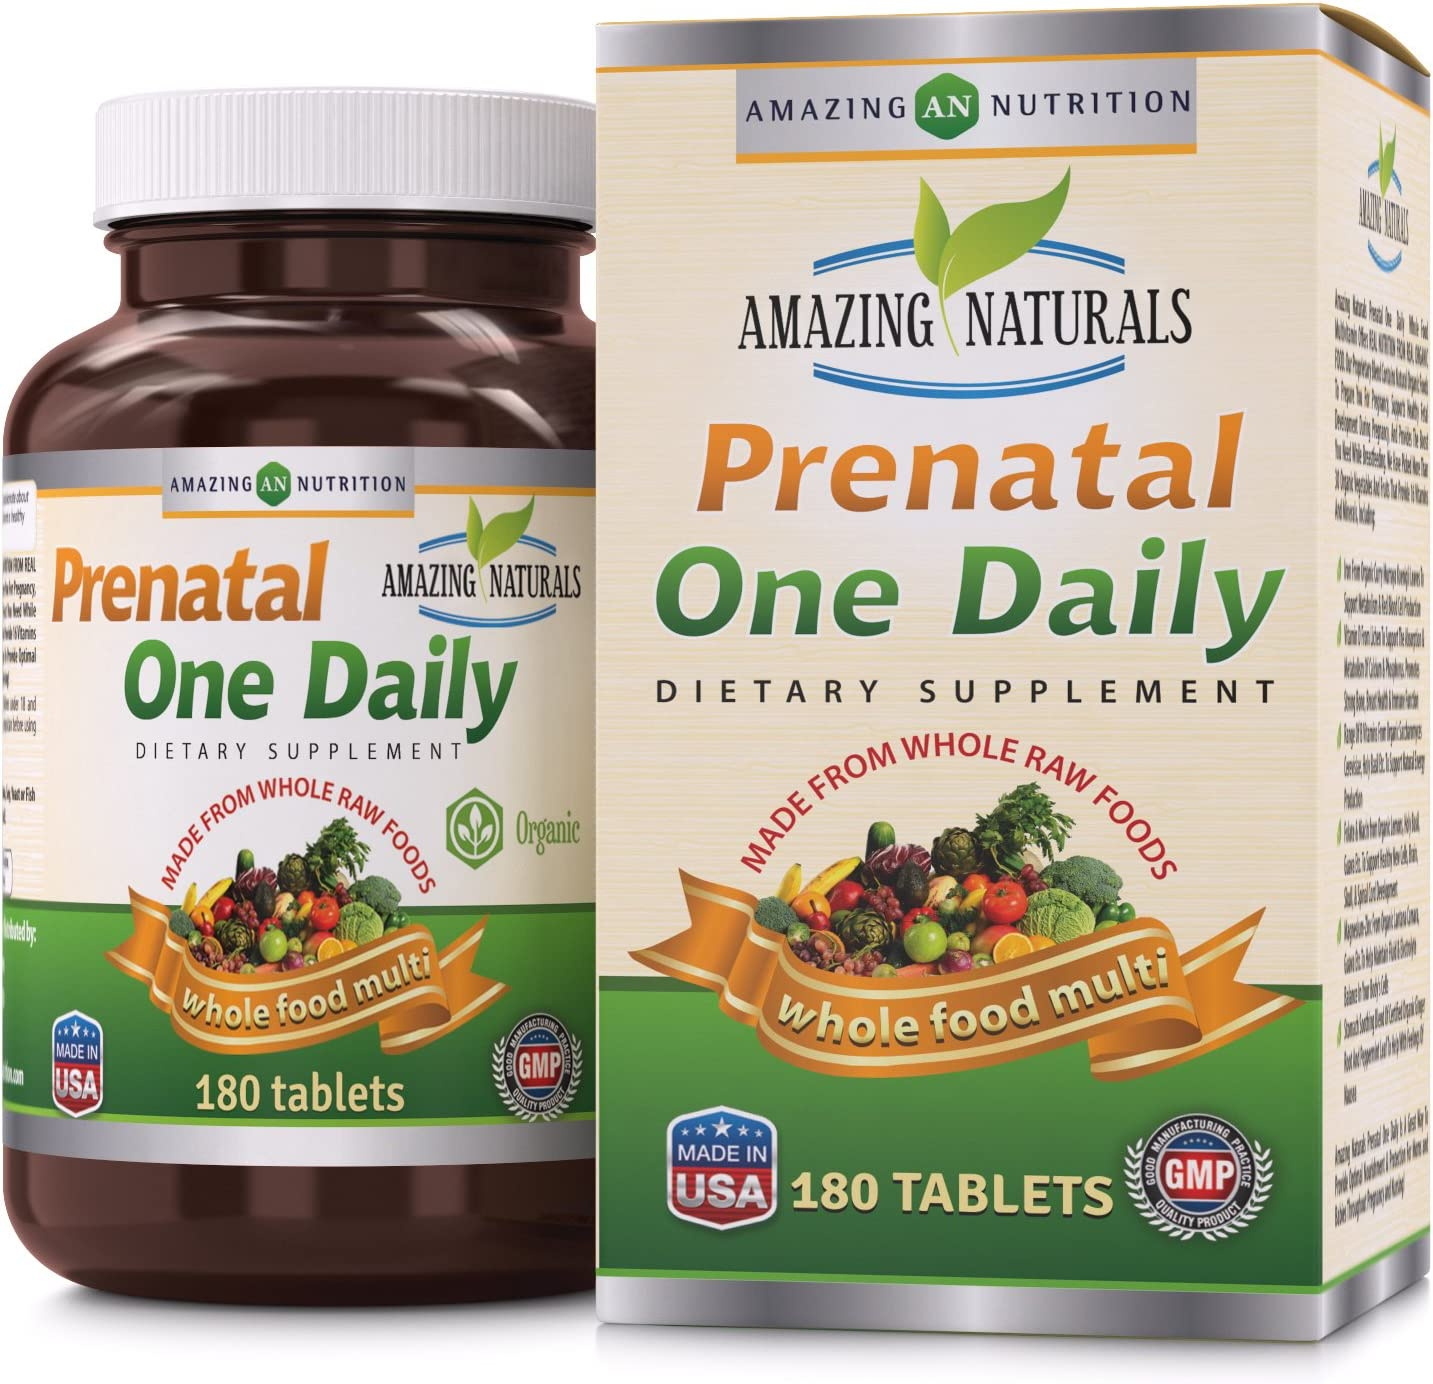 Amazing Naturals PRENATAL ONE DAILY Multivitamin with Floic Acid * Best Raw, Whole Food Multivitamins For New Moms and Moms-to-be * 180 Tablets Per Bottle * Packed With The Goodness Of Over